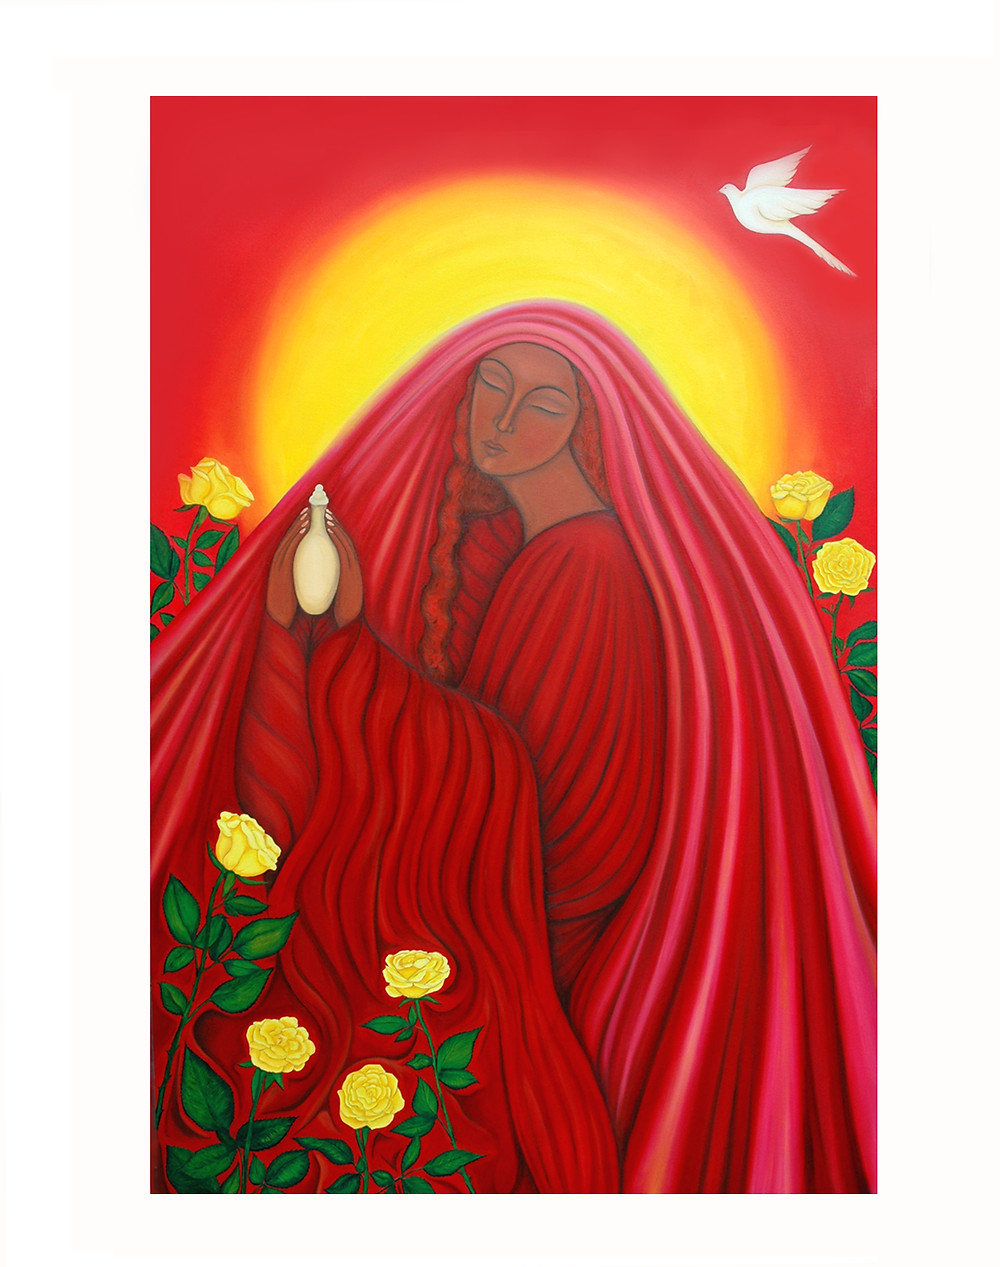 Fragment of Mary Magdalene of the Roses by Tanya Torres